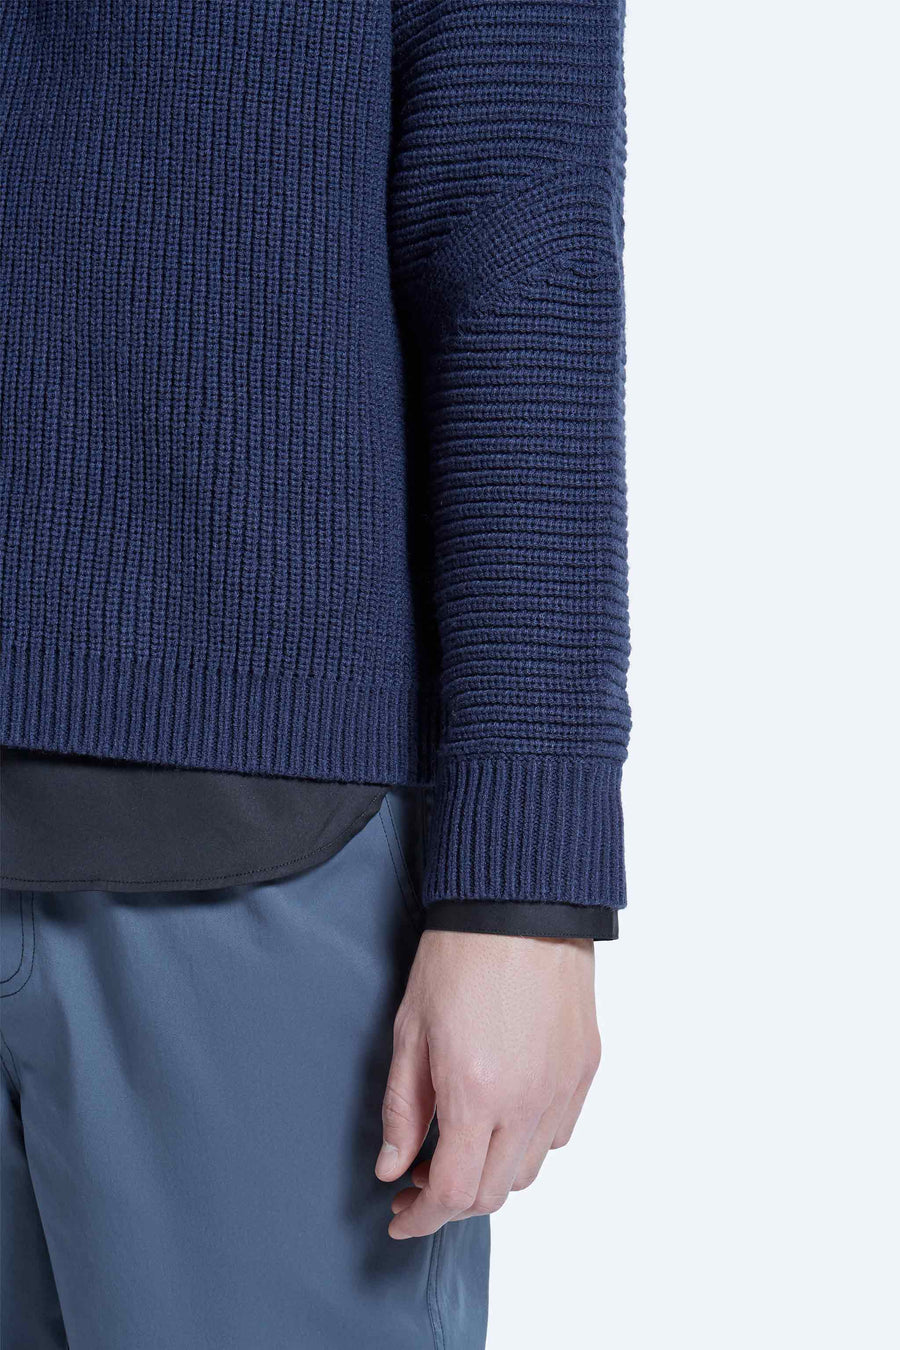 harlan + holden sweater dart blue